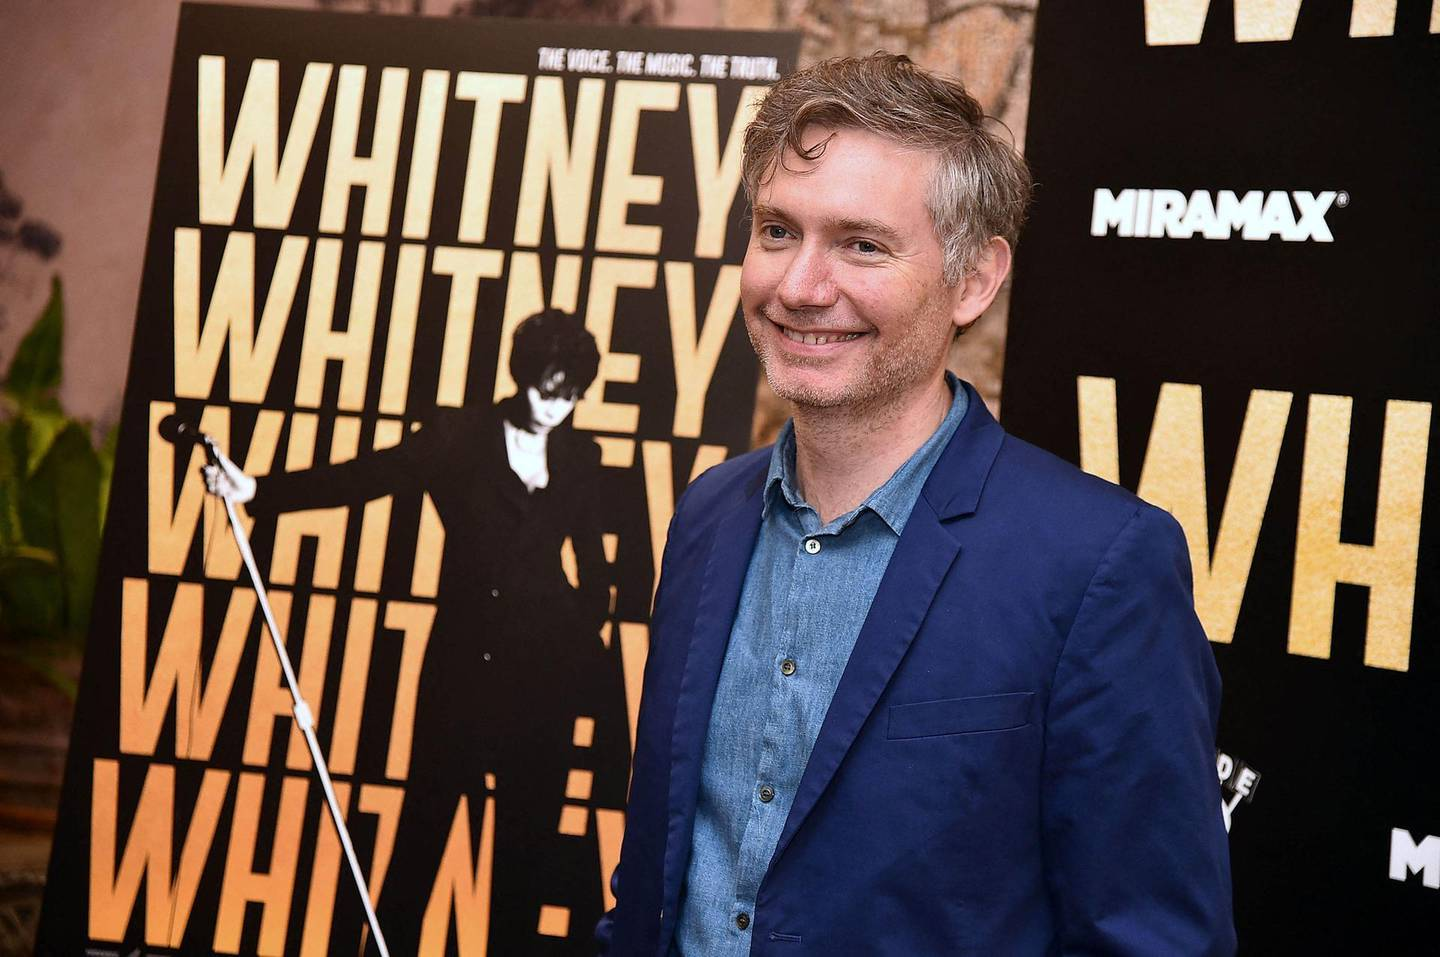 """NEW YORK, NY - JUNE 27: Director Kevin MacDonald attends the """"Whitney"""" New York Screening at the Whitby Hotel on June 27, 2018 in New York City.   Theo Wargo/Getty Images/AFP (Photo by Theo Wargo / GETTY IMAGES NORTH AMERICA / AFP)"""